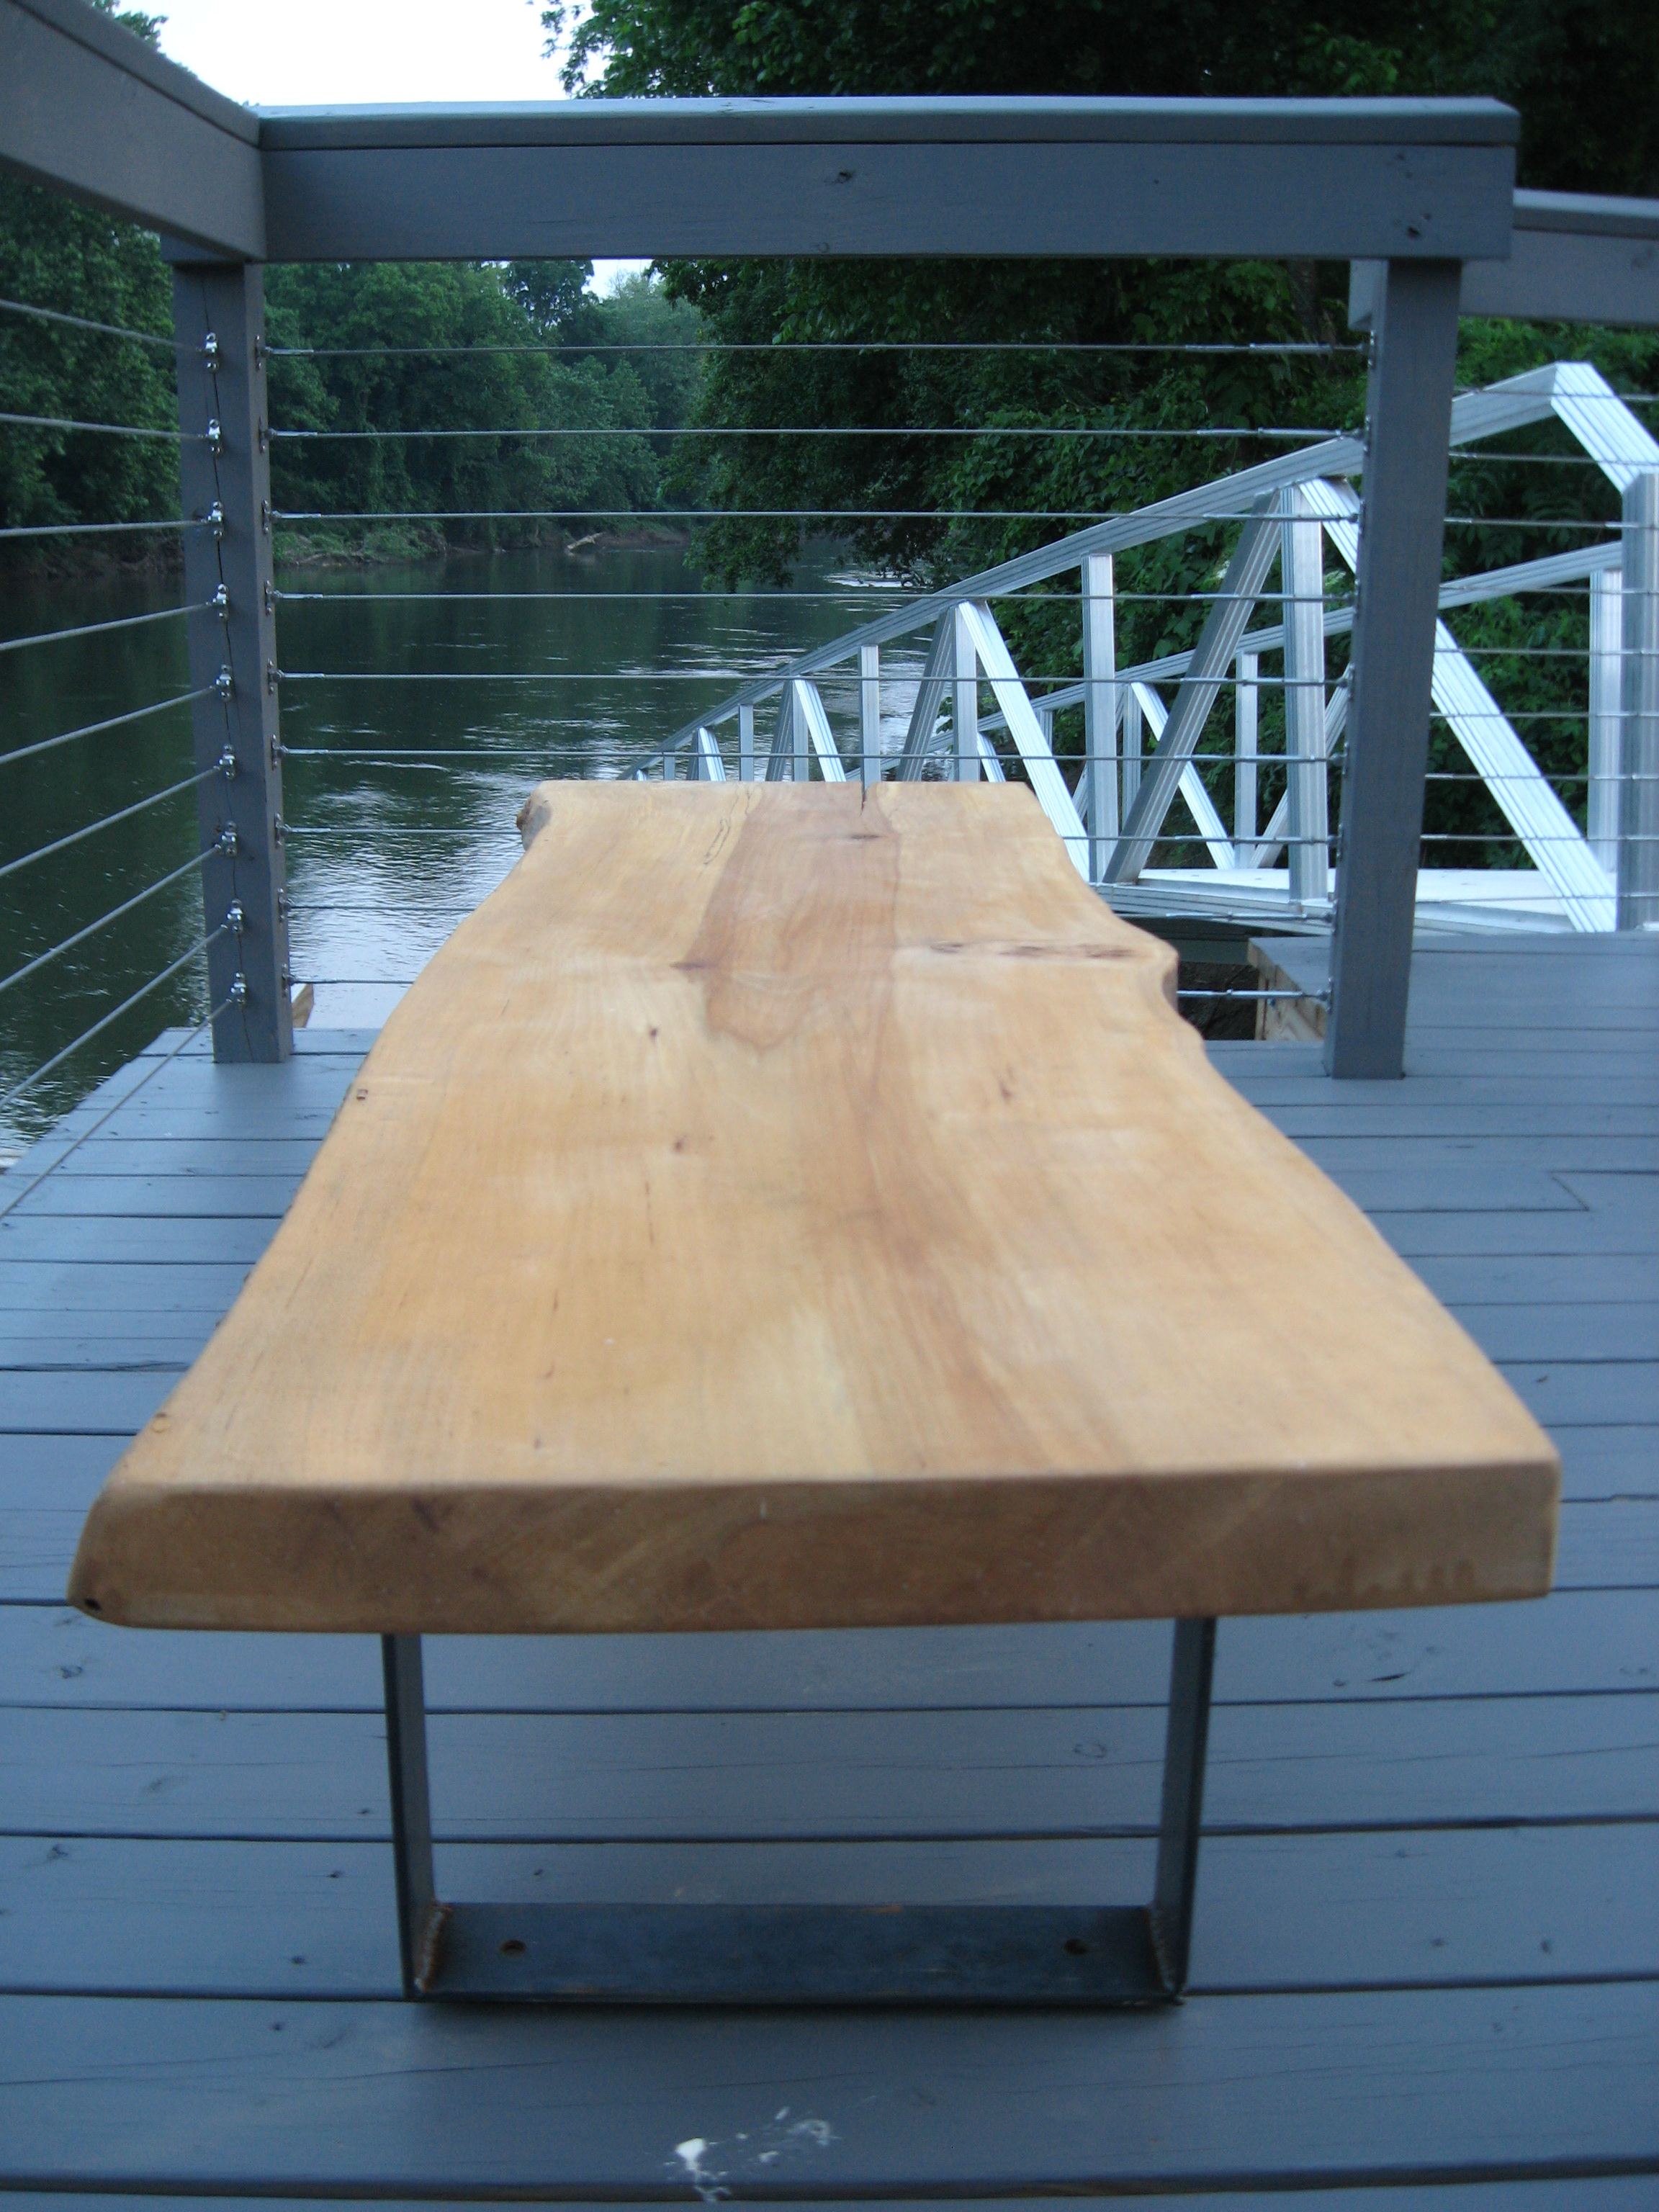 Urban Eco Group Eutree Root to Fruit Forest Free White Oak Wood Deck and live edge slab benches